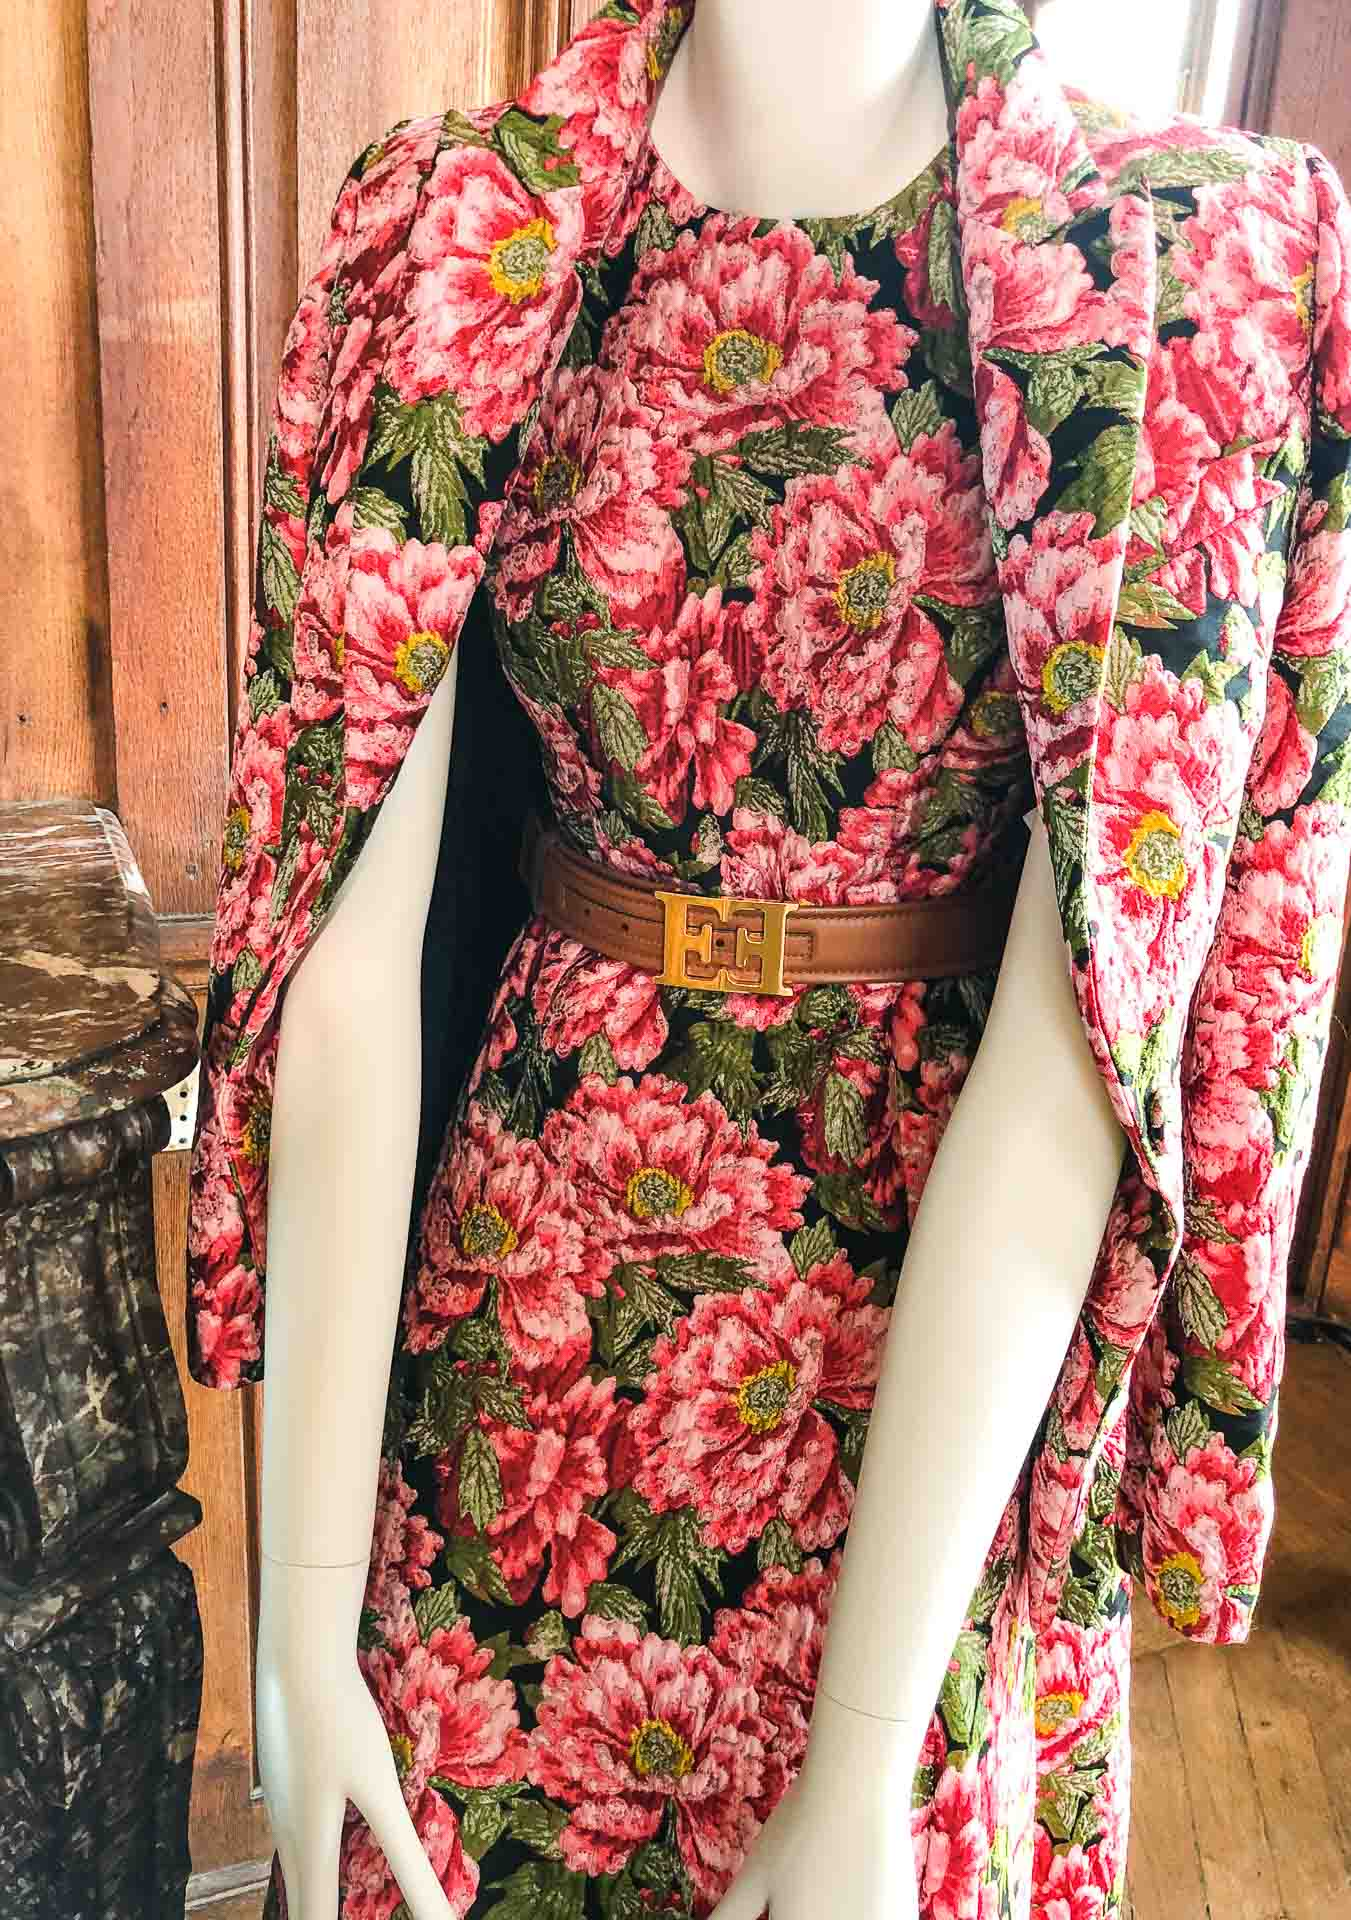 Brunette from Wall Street Escada floral dress with brown belt